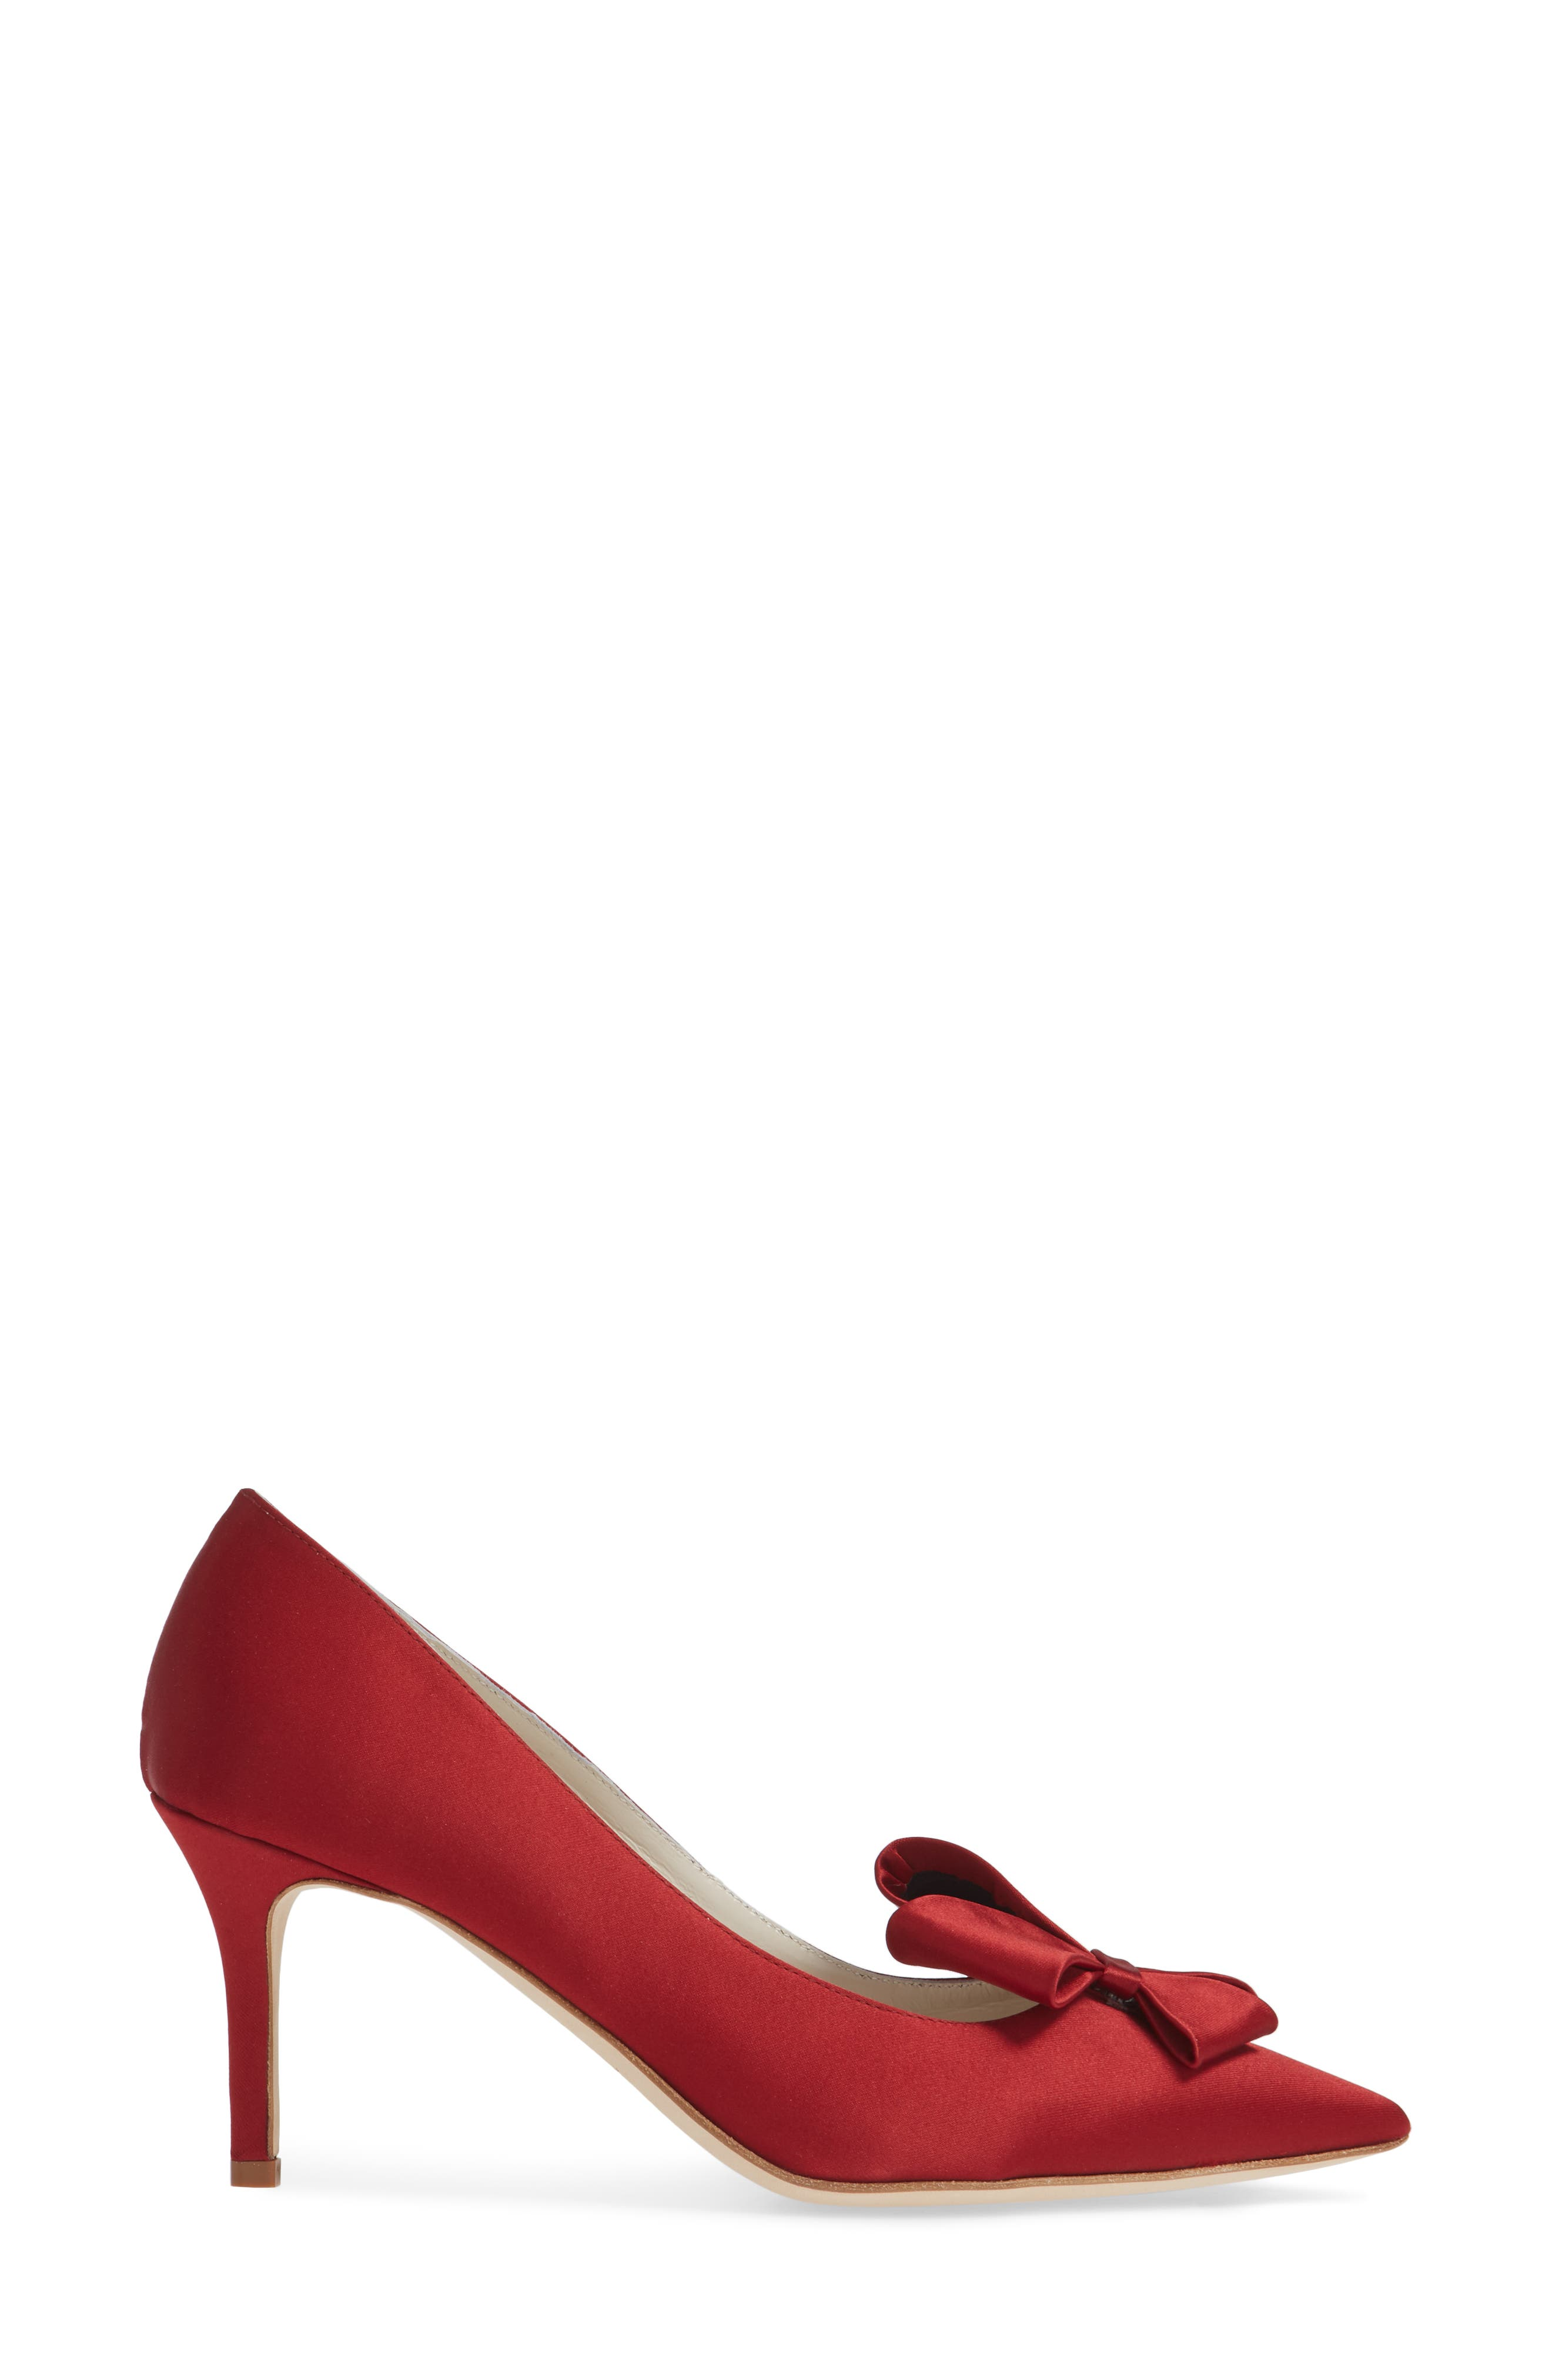 SOMETHING BLEU,                             Caitlin Bow Pointy Toe Pump,                             Alternate thumbnail 3, color,                             LIPSTICK MOIRE